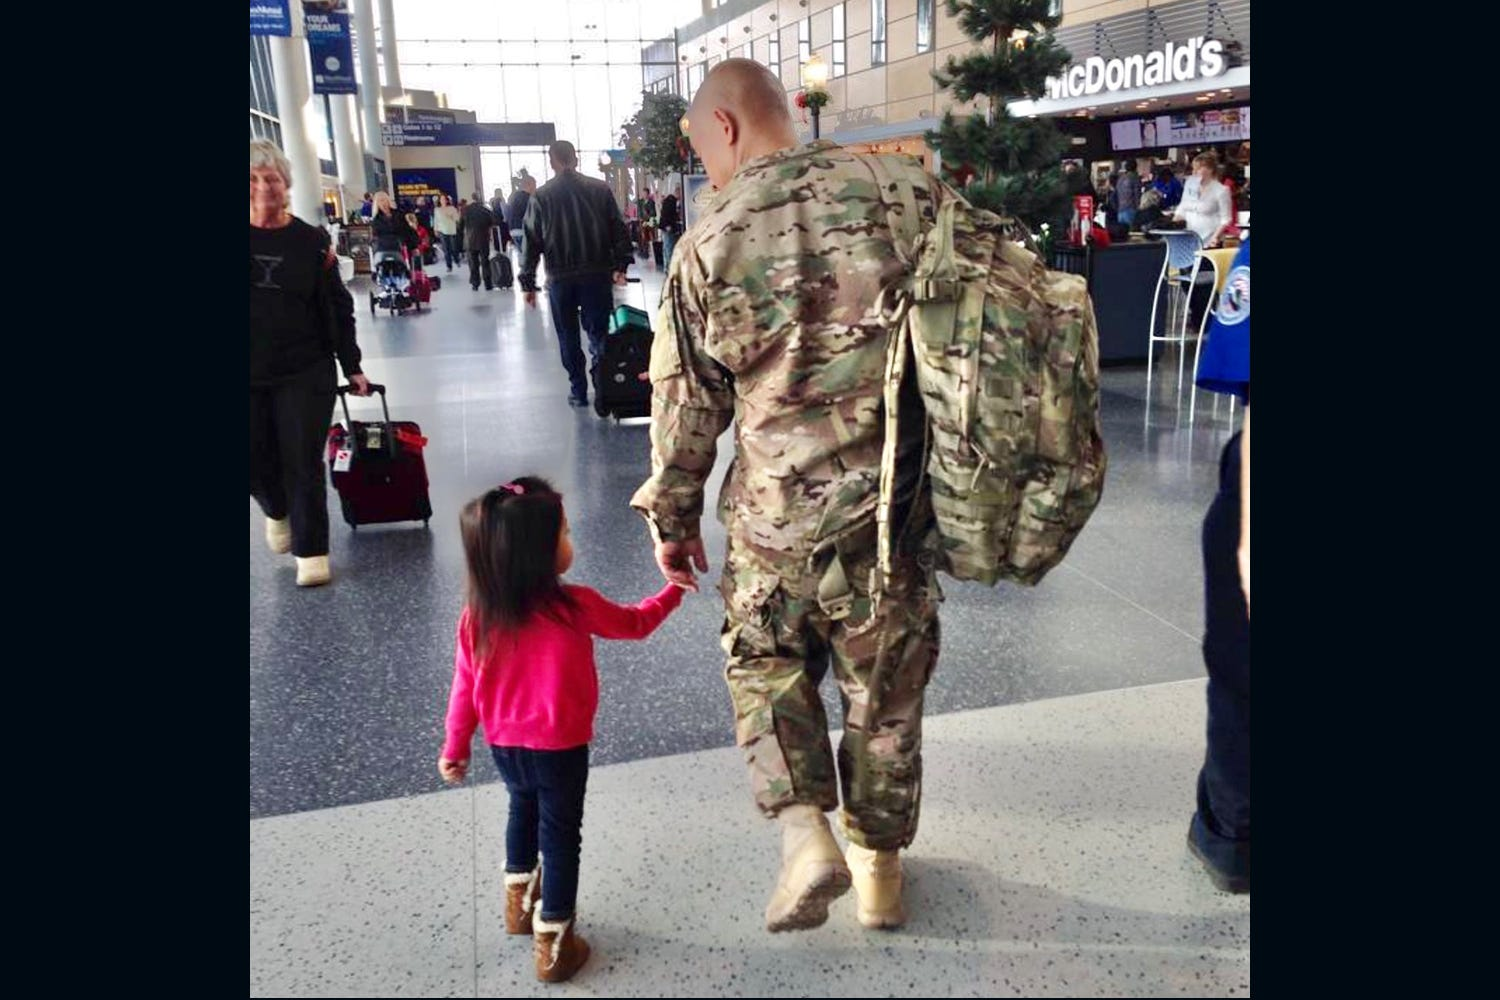 Nhem with his daughter Madison, age 2 at the time, at Bradley Airport in Hartford, Conn., on his way to his second deployment to Afghanistan in December 2013, this time as an Air Force officer.